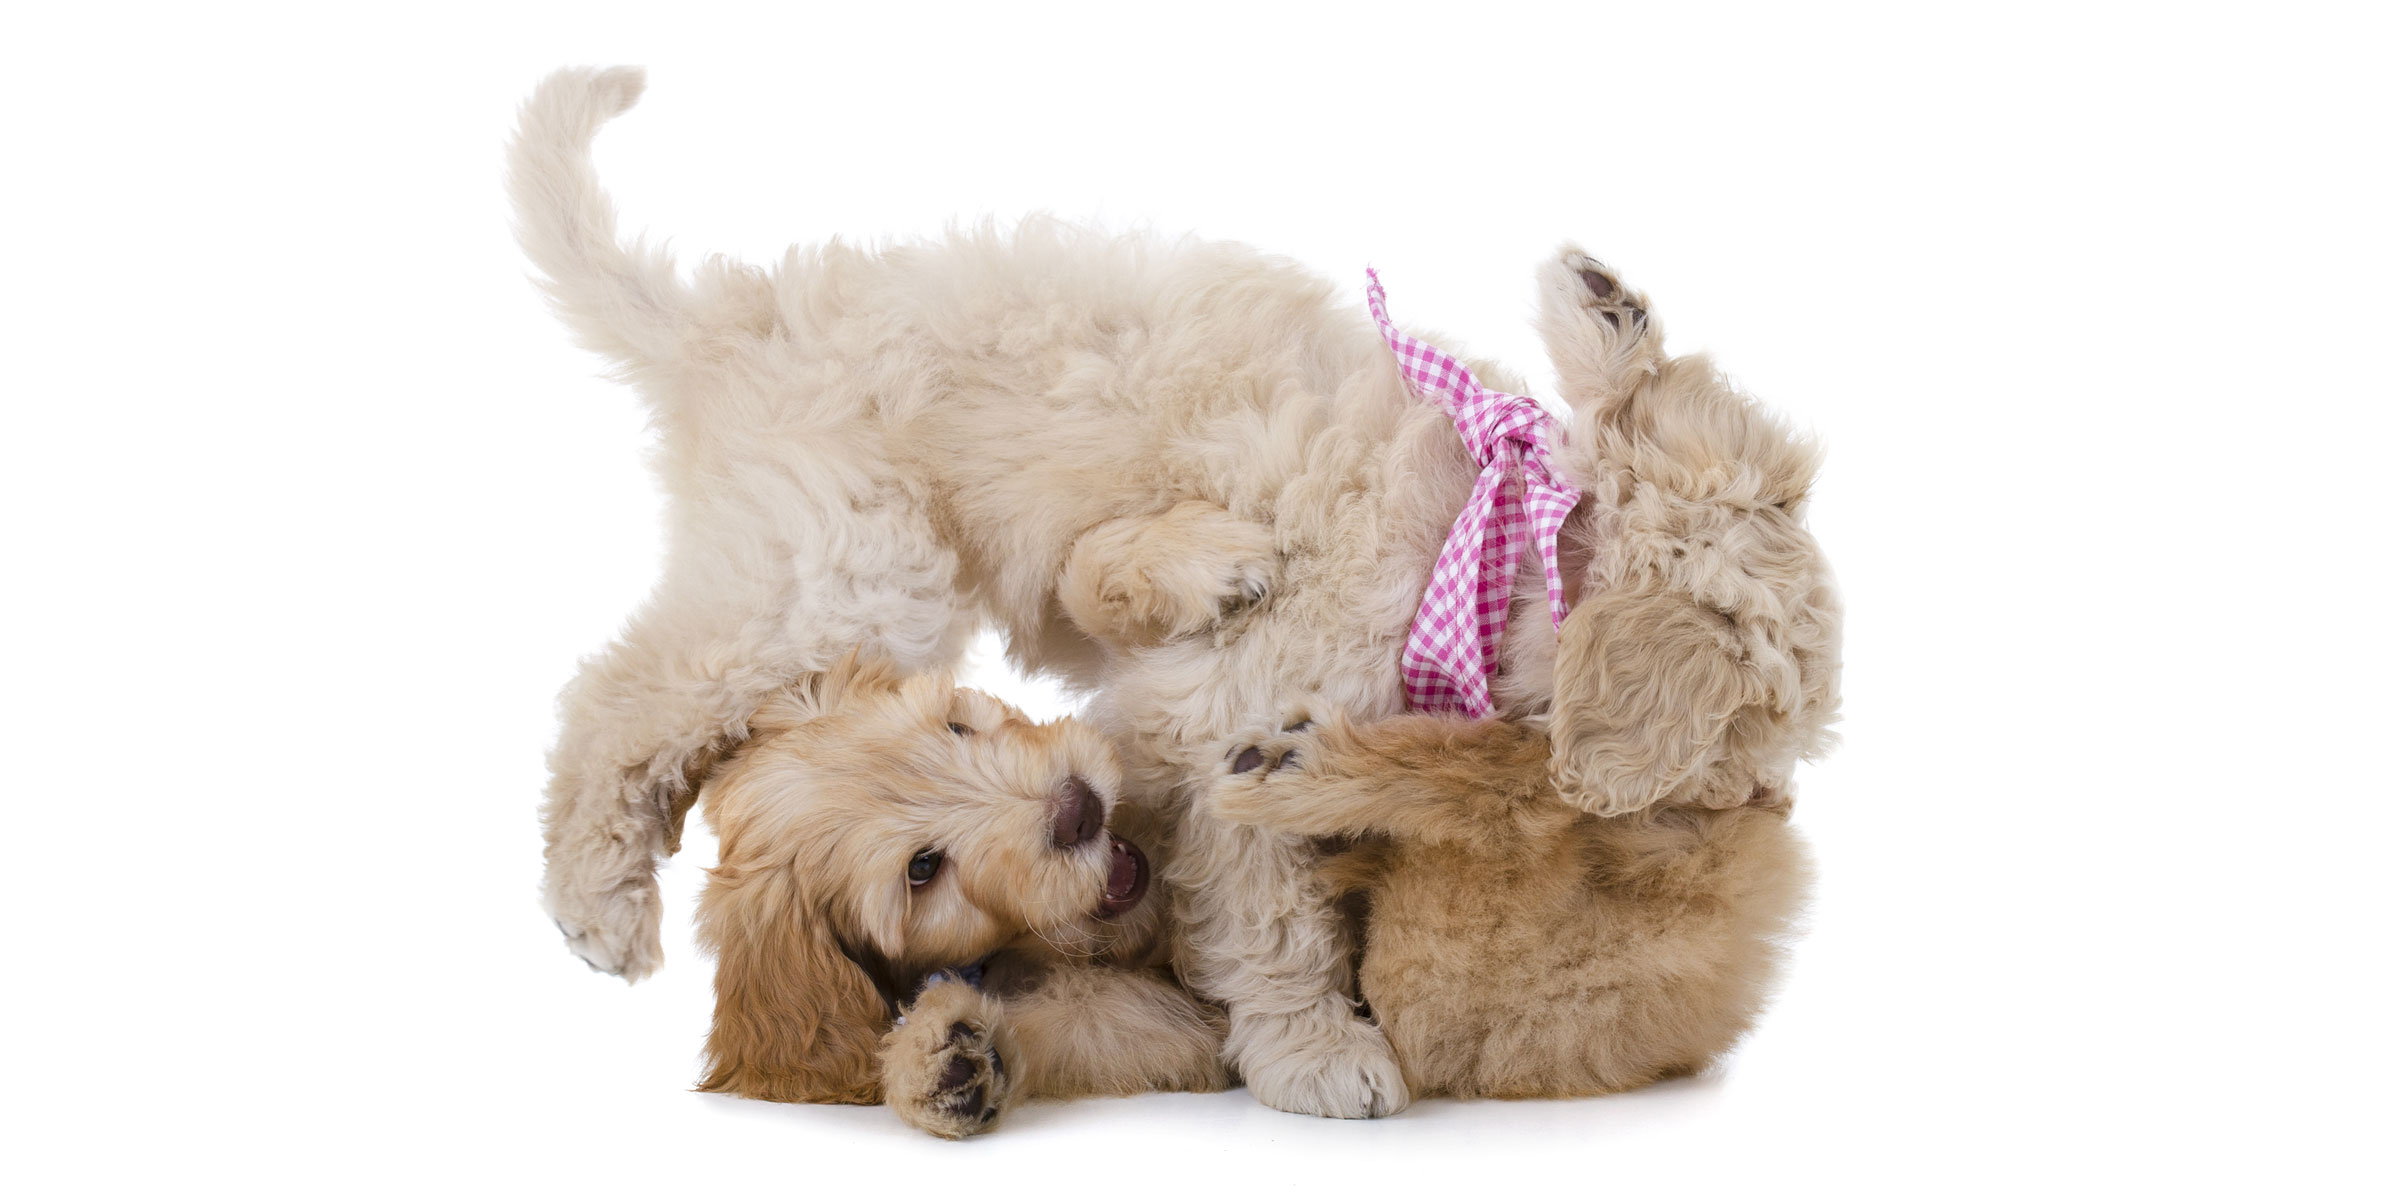 How to Find the Best Australian Labradoodle Breeders